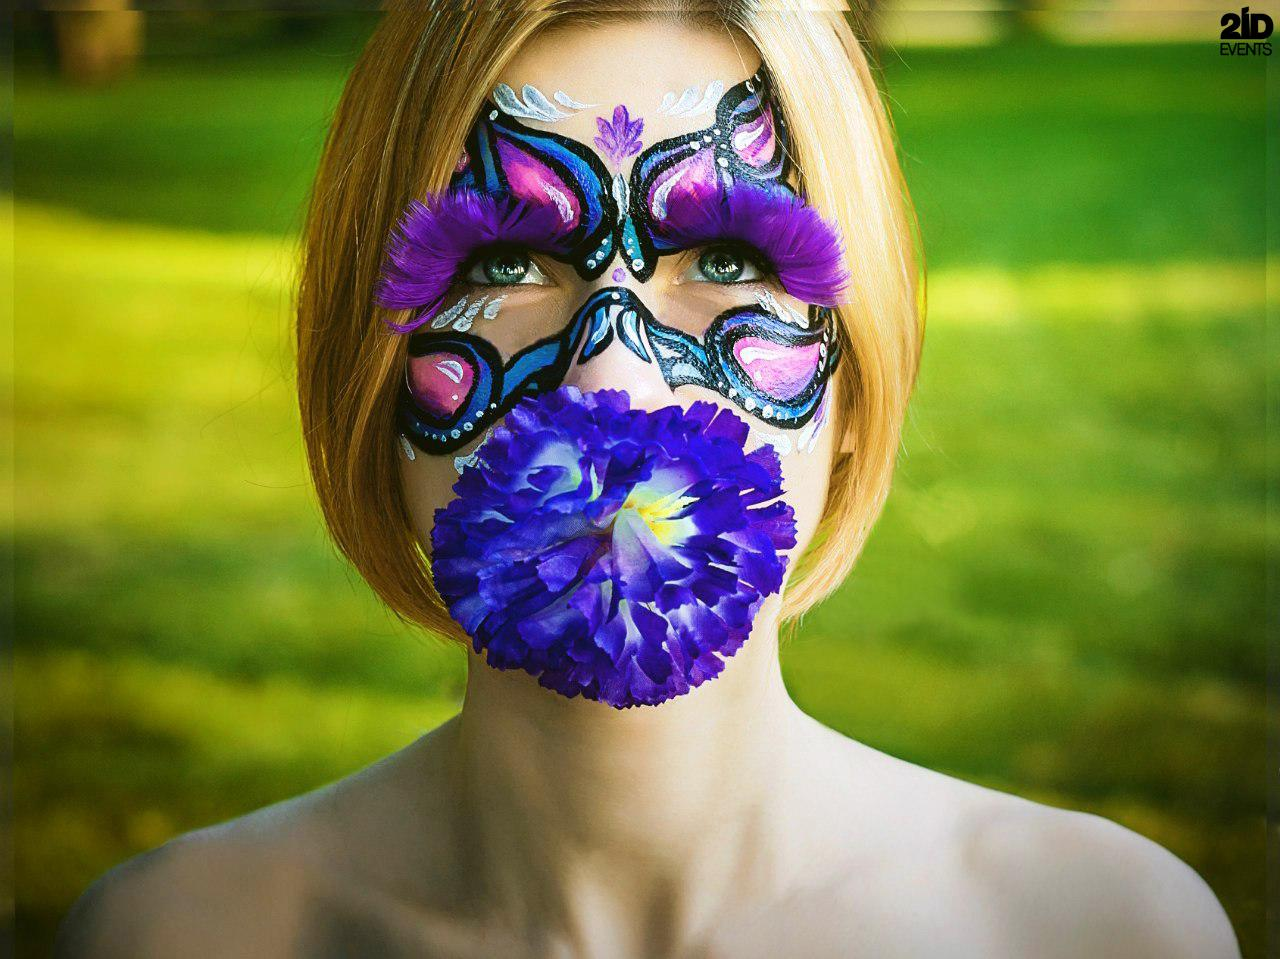 Face and Body Painter for testivals